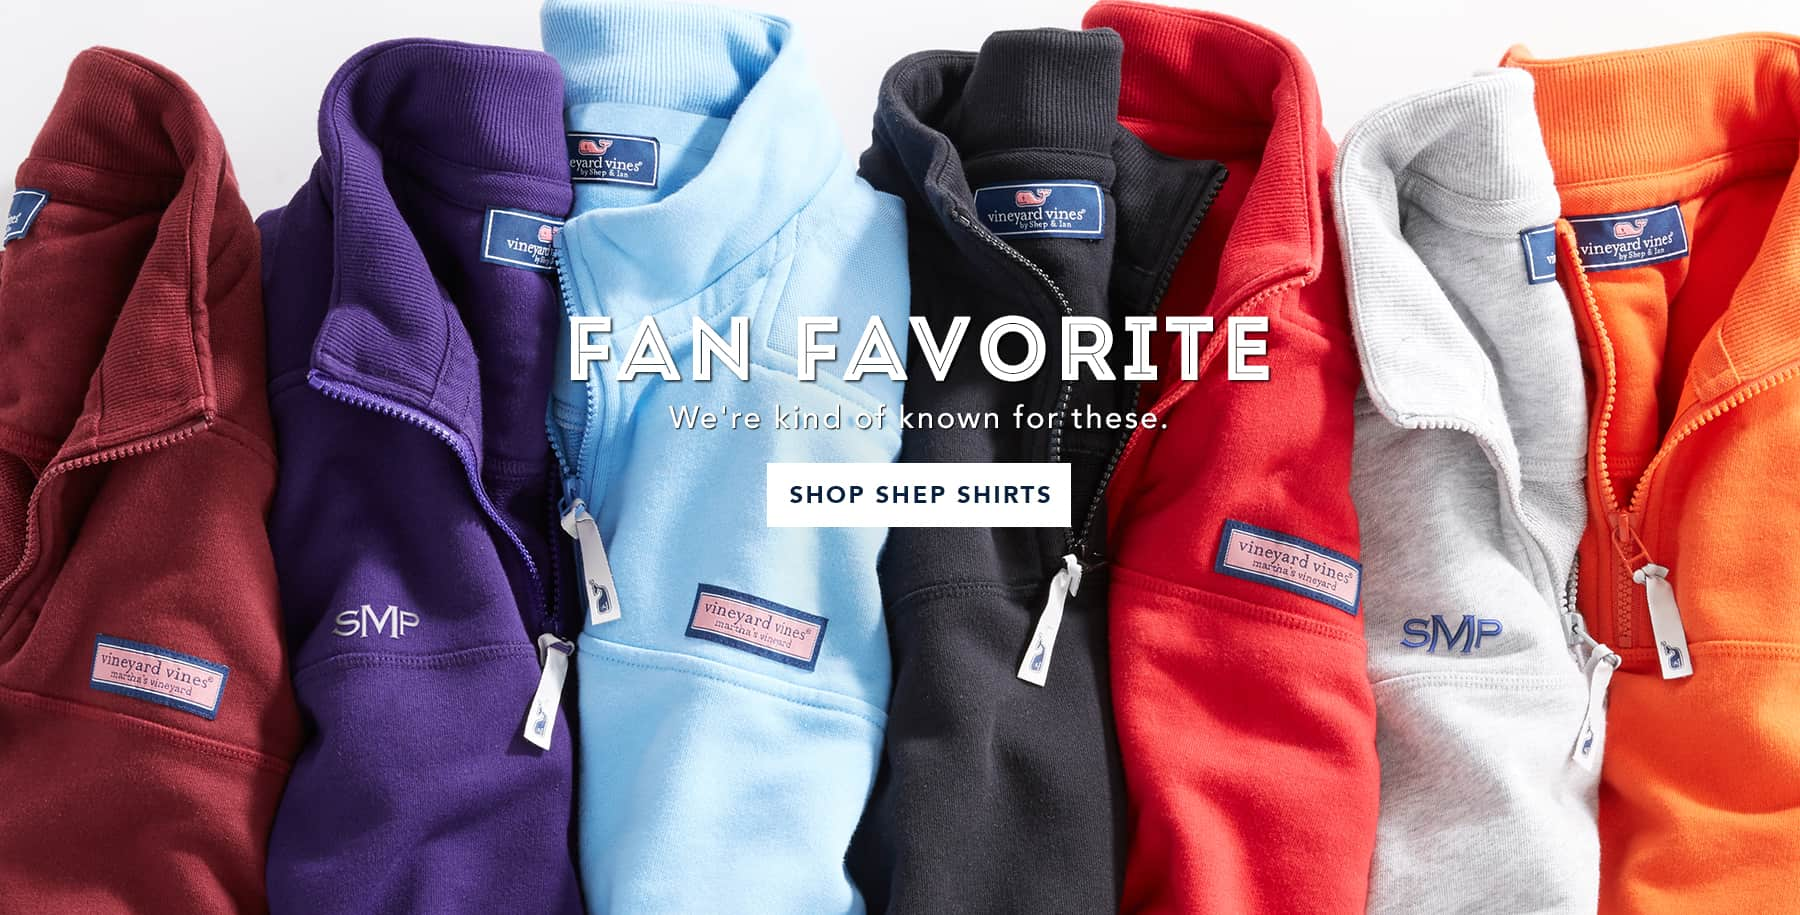 Fan favorites. We're kinda known for these. Shop Shep Shirts.